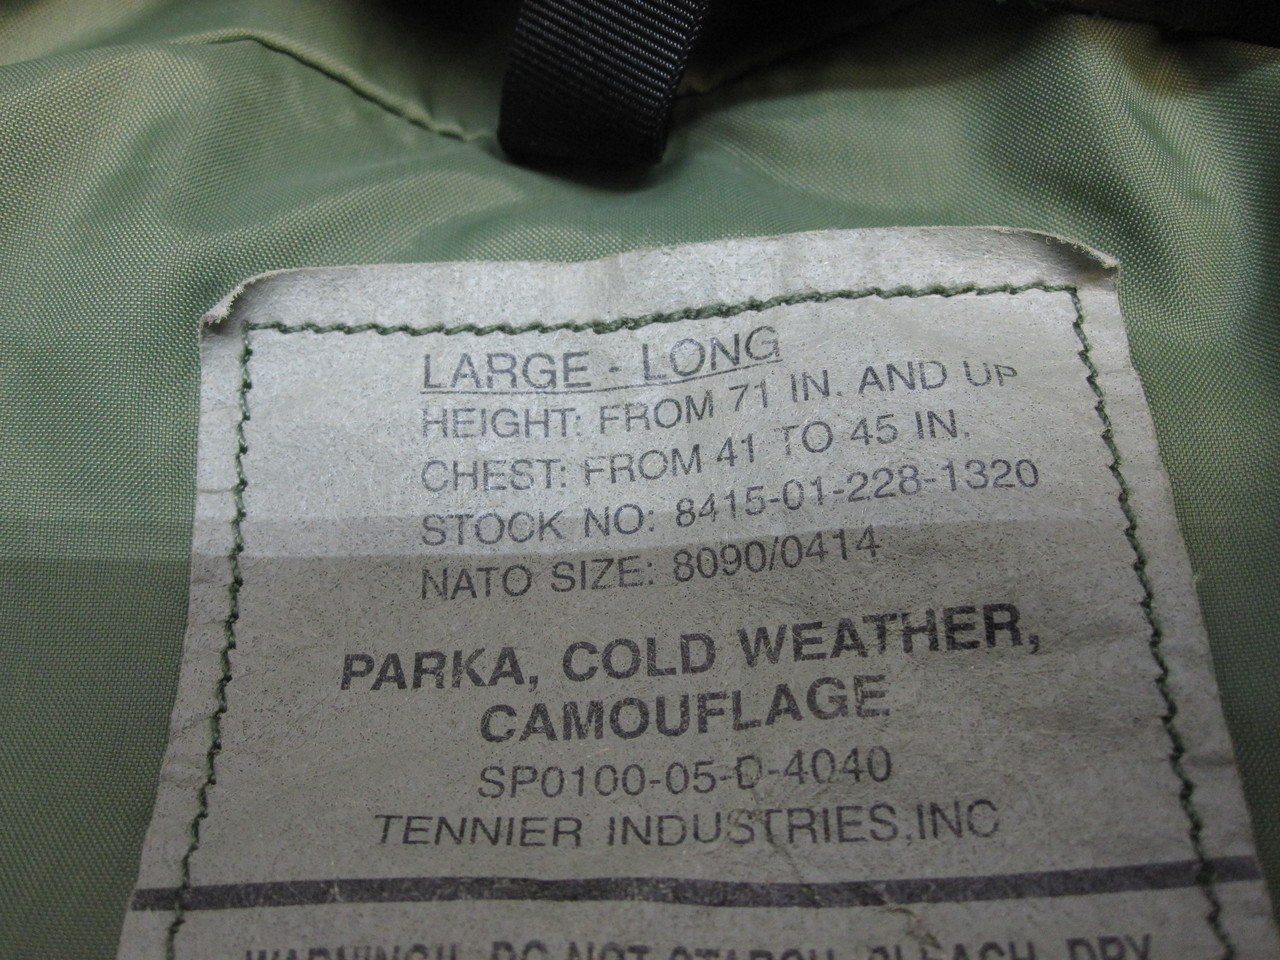 ARMY ISSUE WOODLAND BDU GORE-TEX JACKET WET/COLD WEATHER PARKA LARGE/LONG br